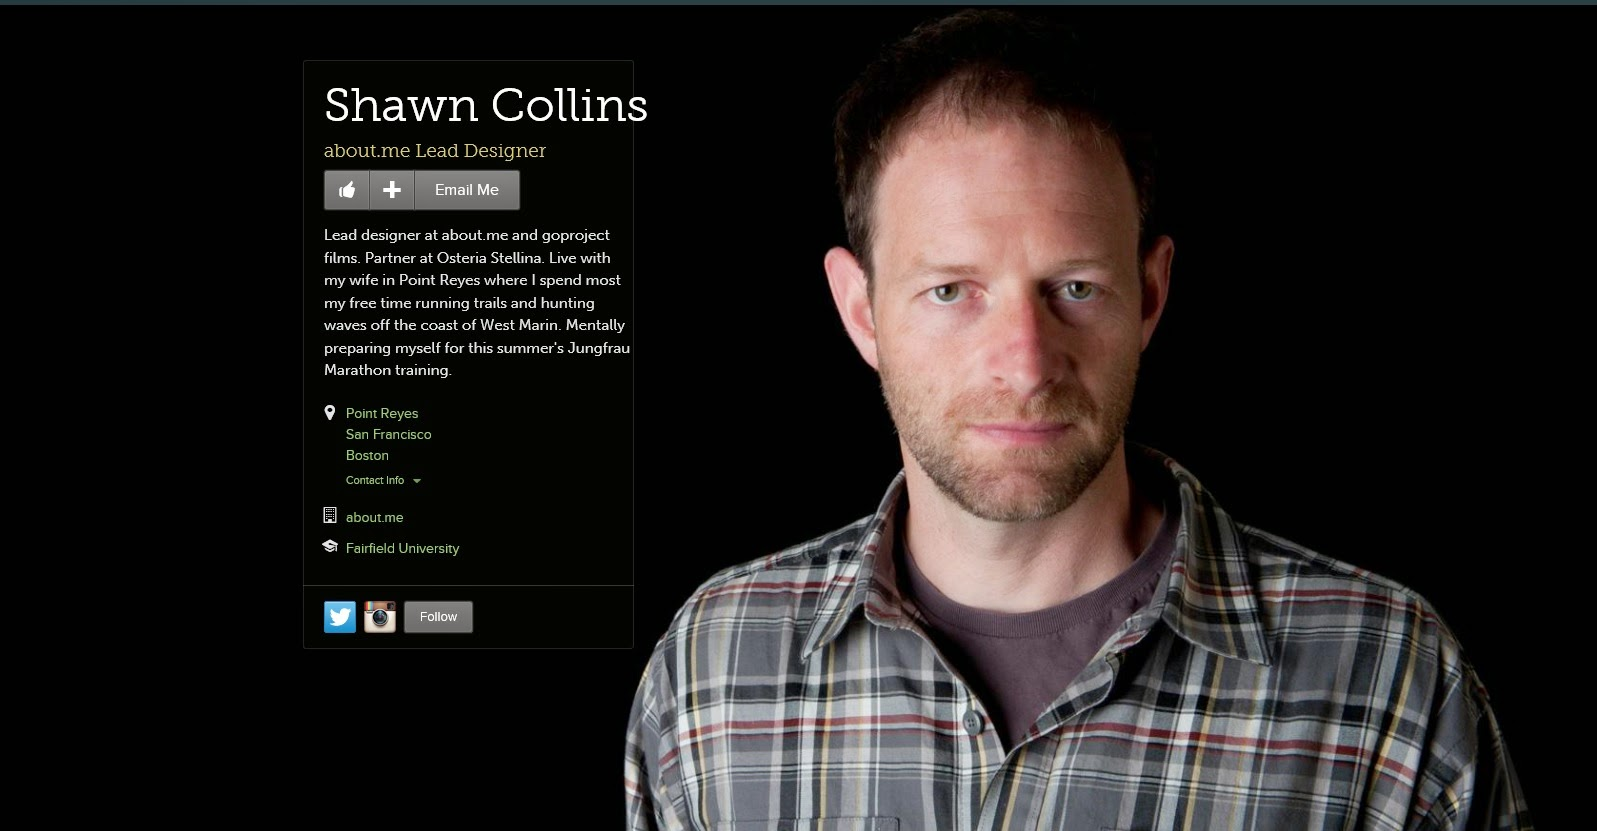 An image of Shawn Collins, Lead Designer